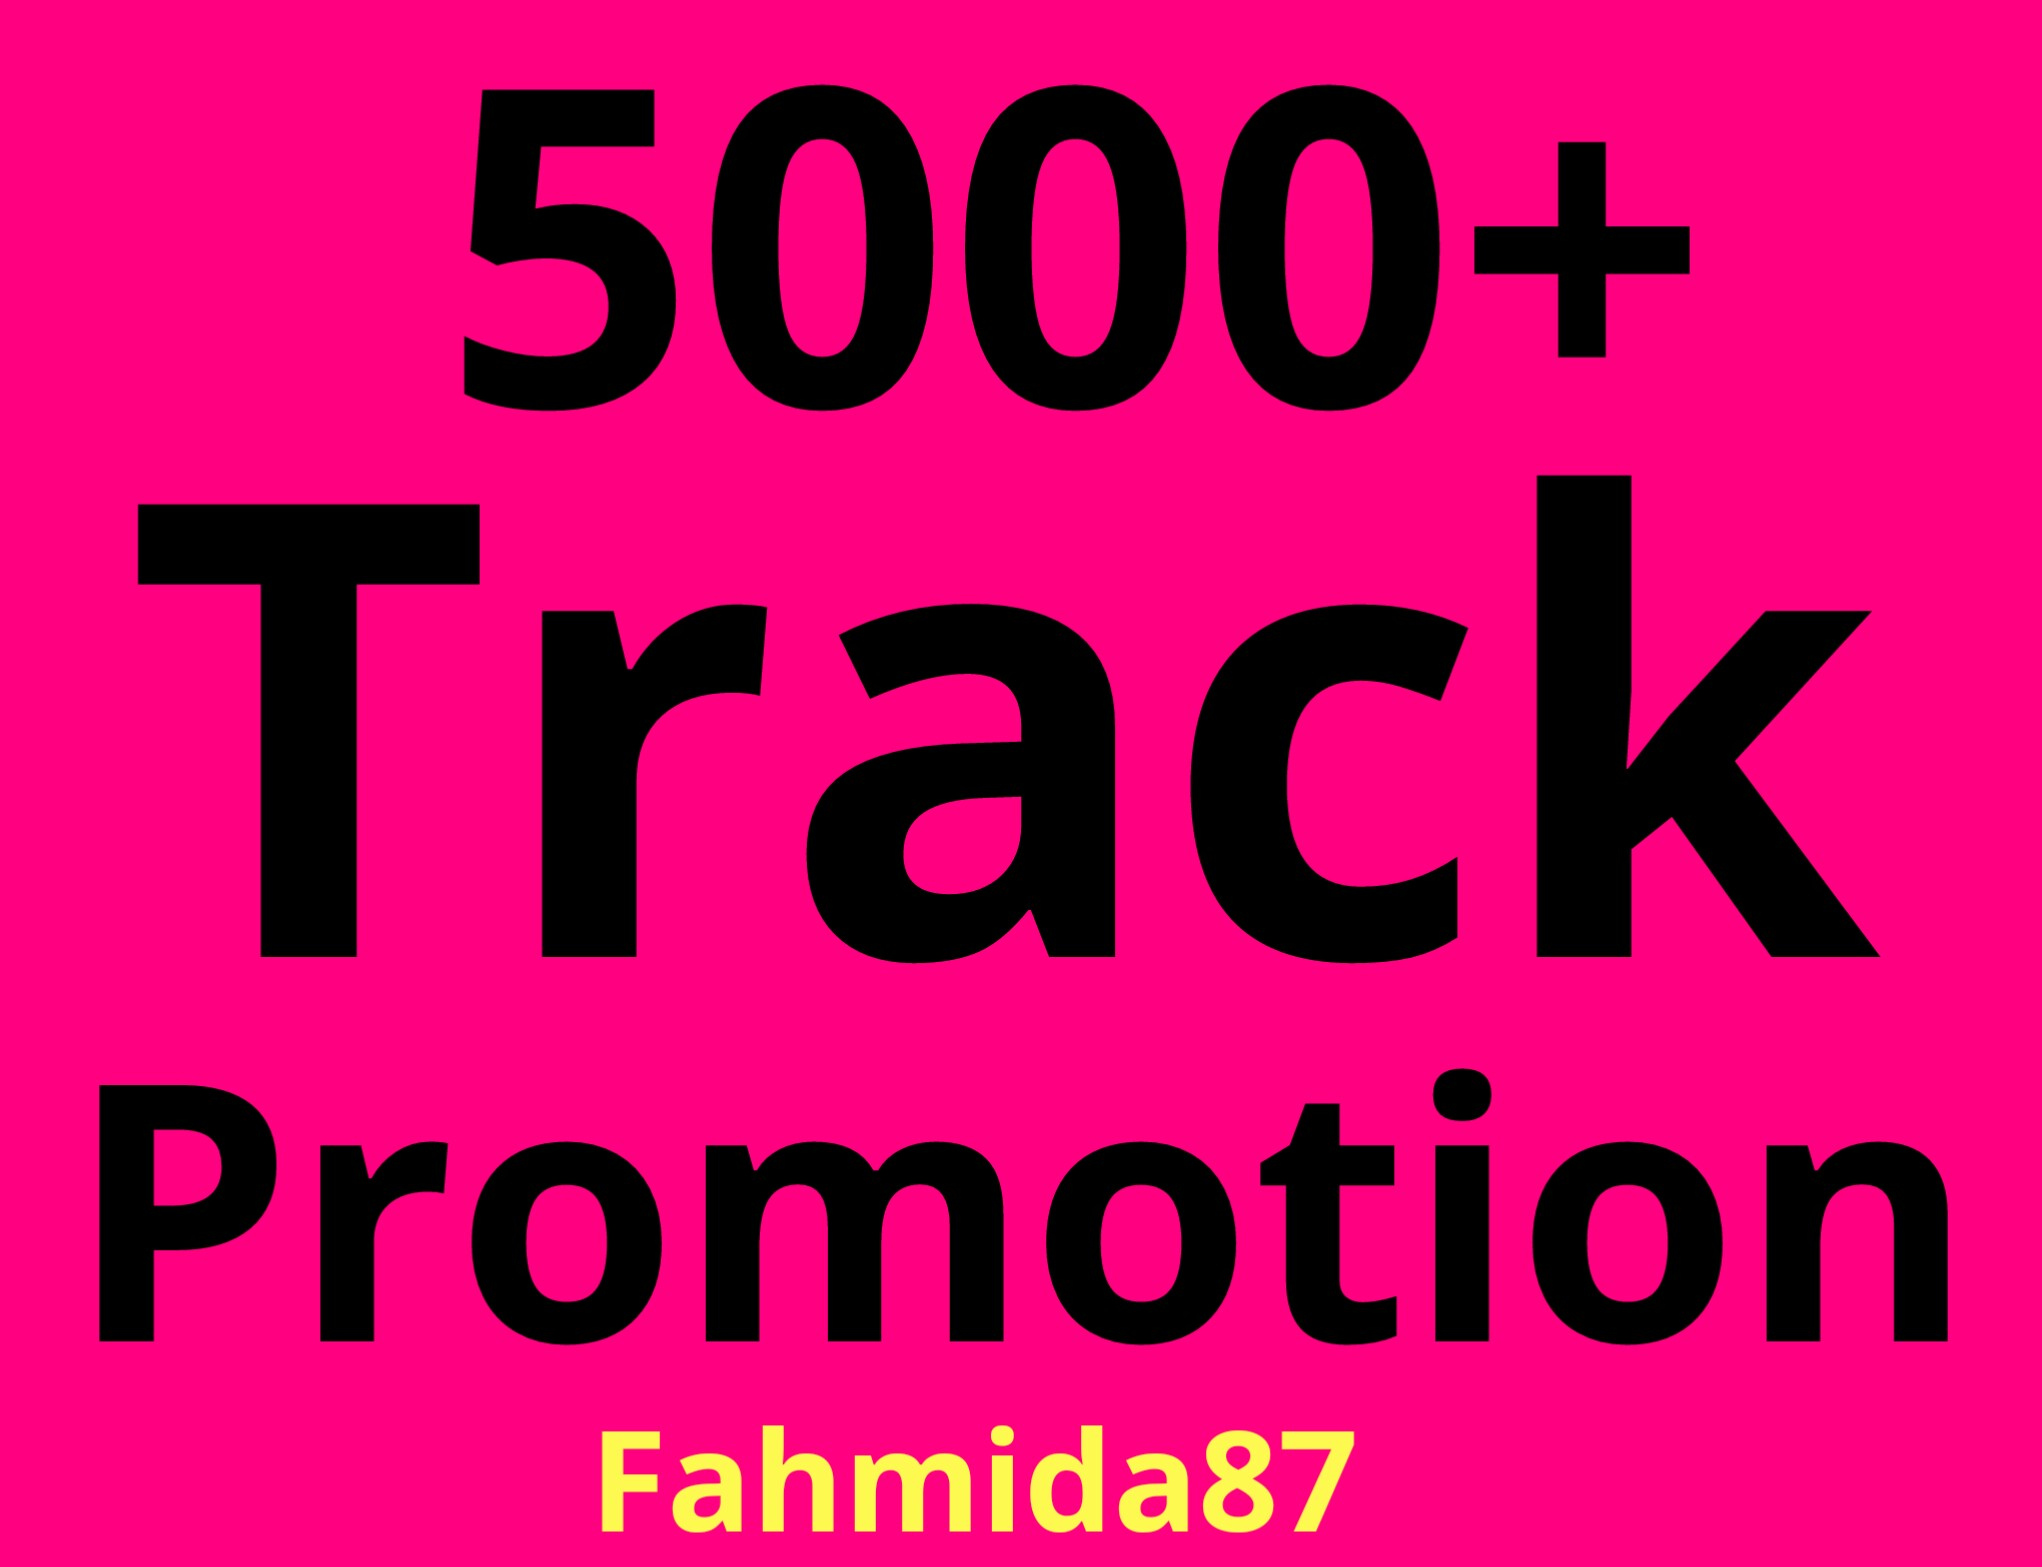 Music Promotion 5000+ HQ Track Promotion Unique Listeners Guaranteed